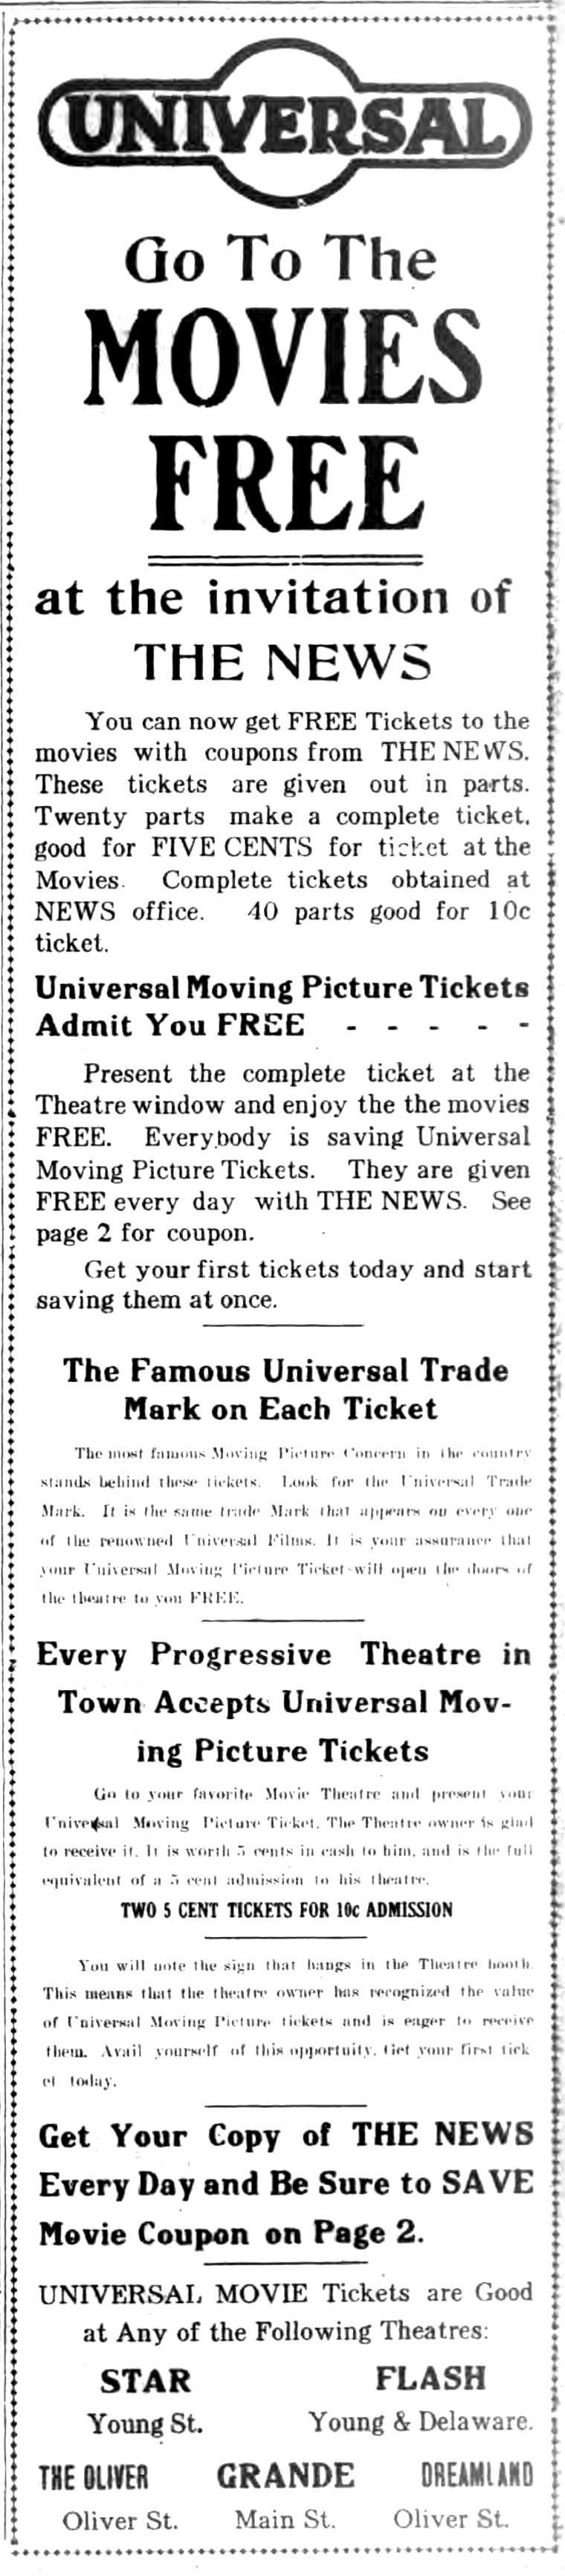 Go to the movies free, ad for STar, Flash, Oliver, Grand, Dreamland (Ton News, 1916-04-05).jpg